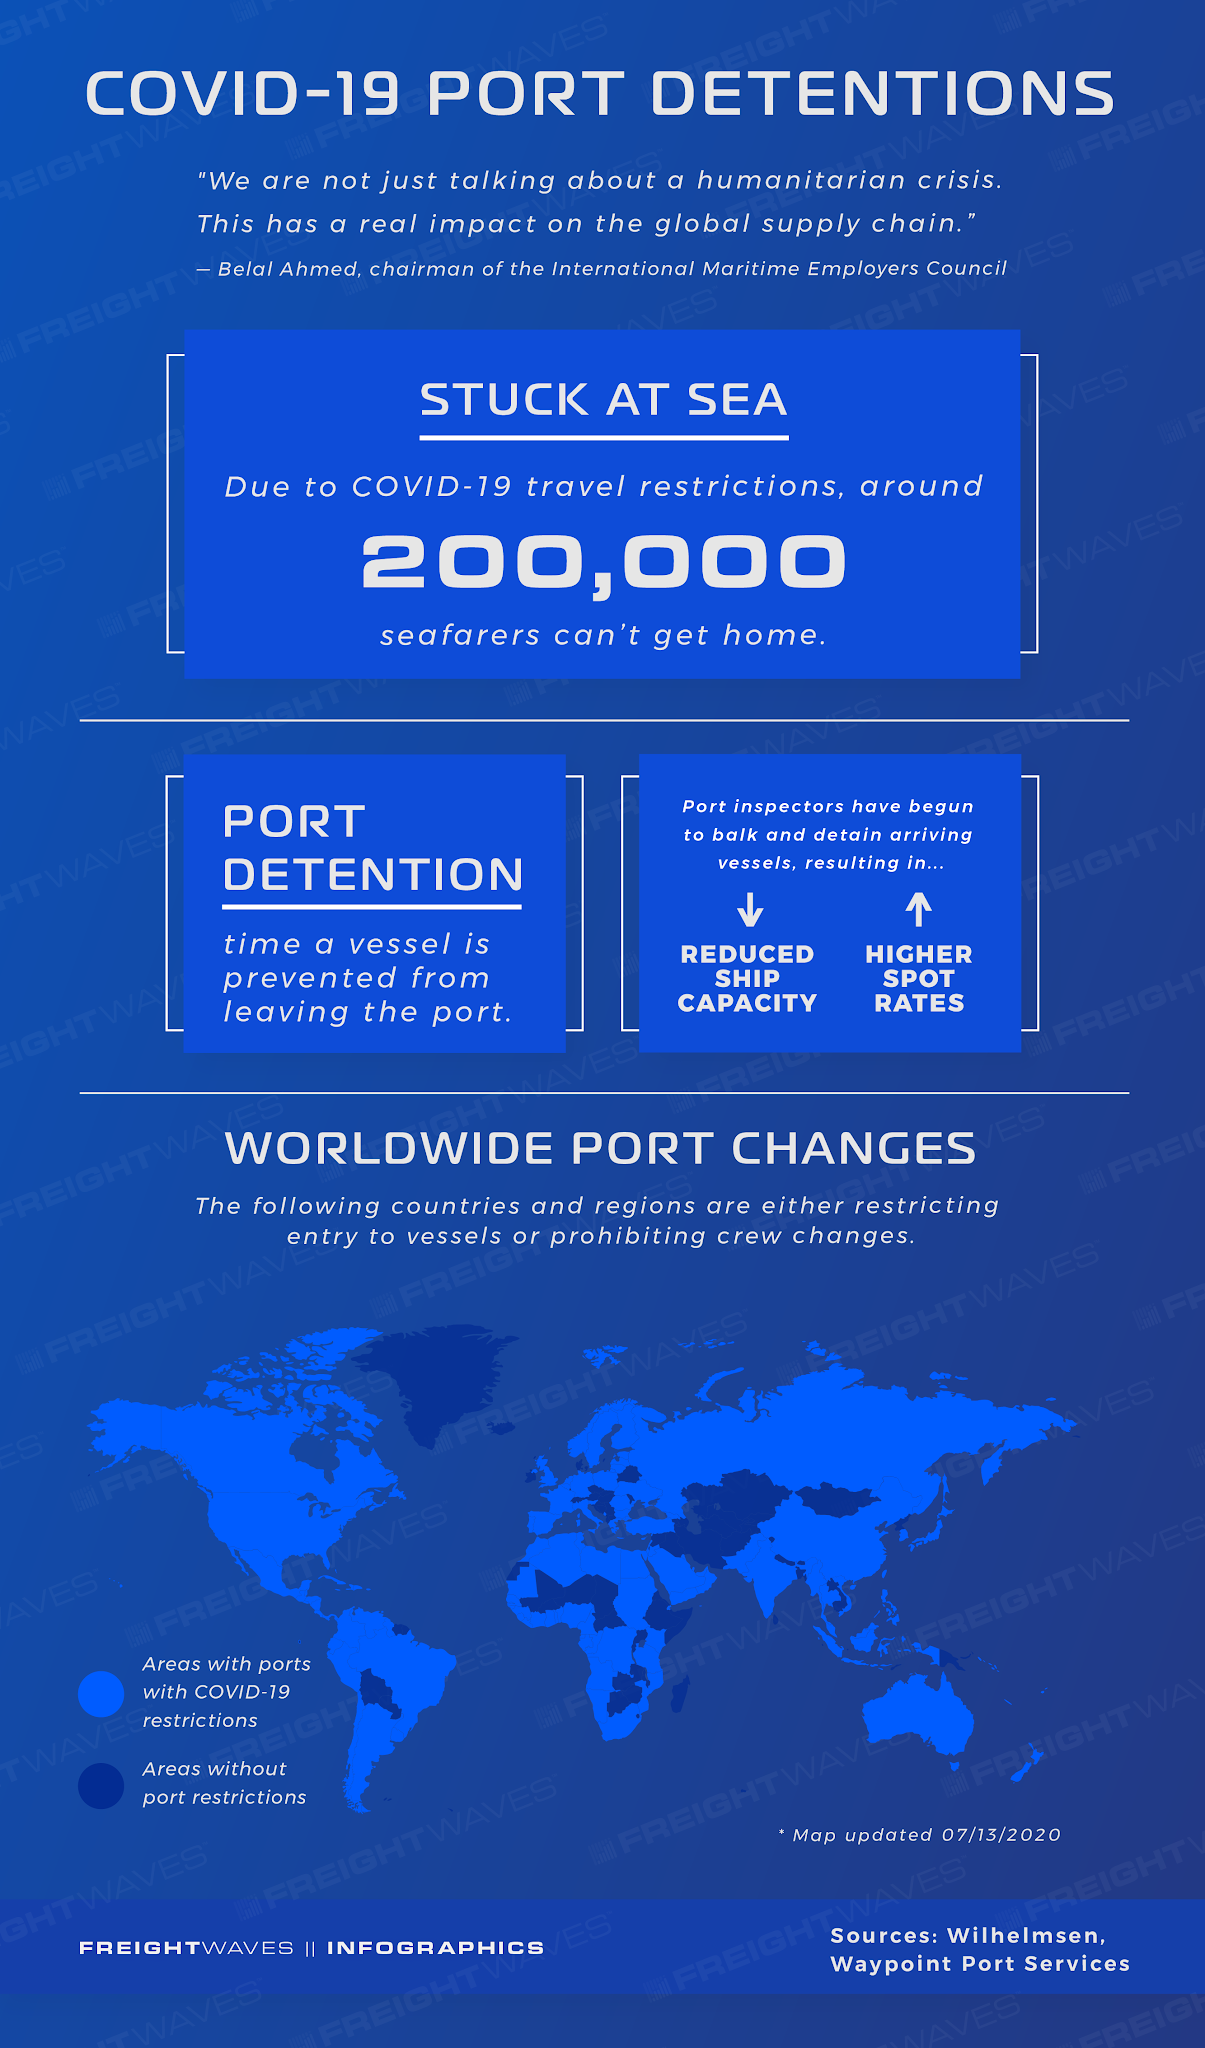 Daily Infographic: COVID-19 Port Detentions #Infographic